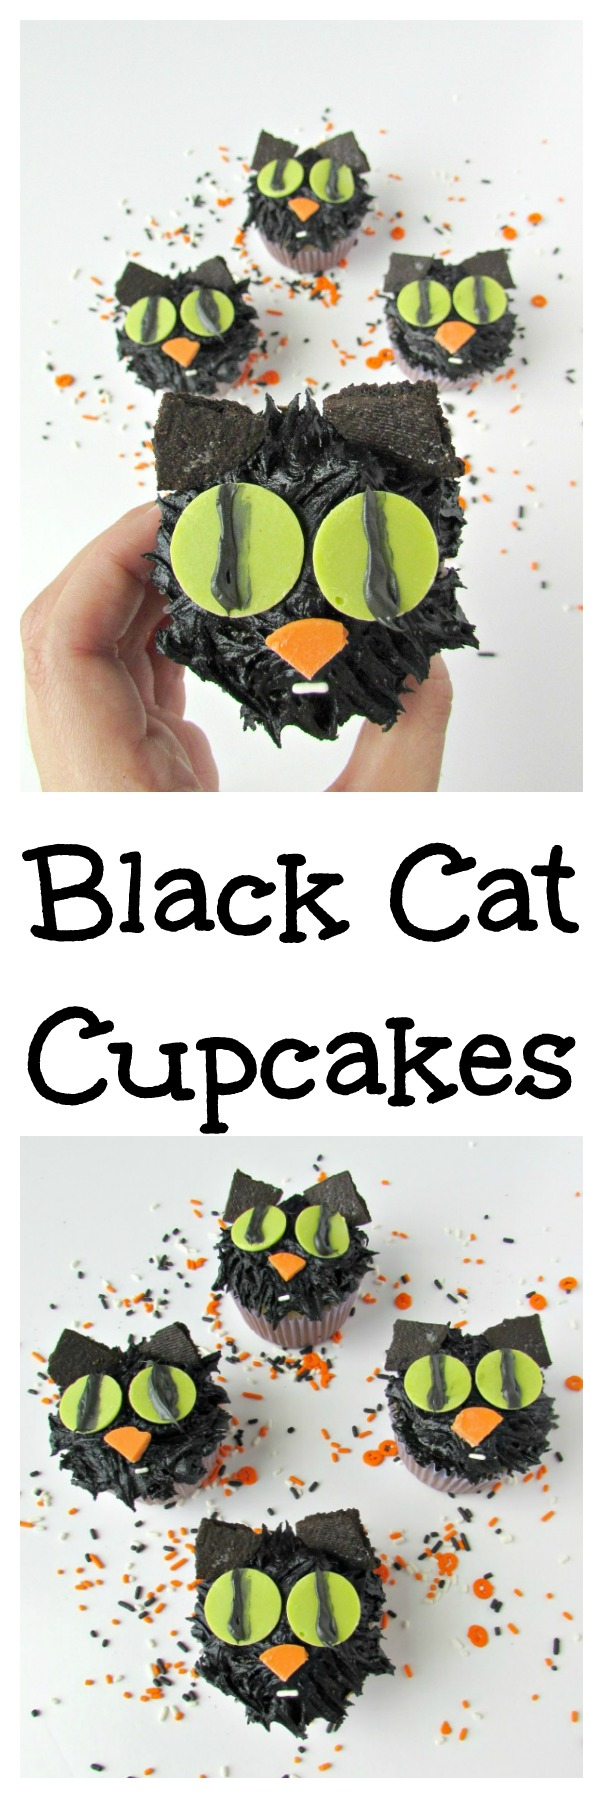 Black Cat Cupcakes are an easy Halloween dessert